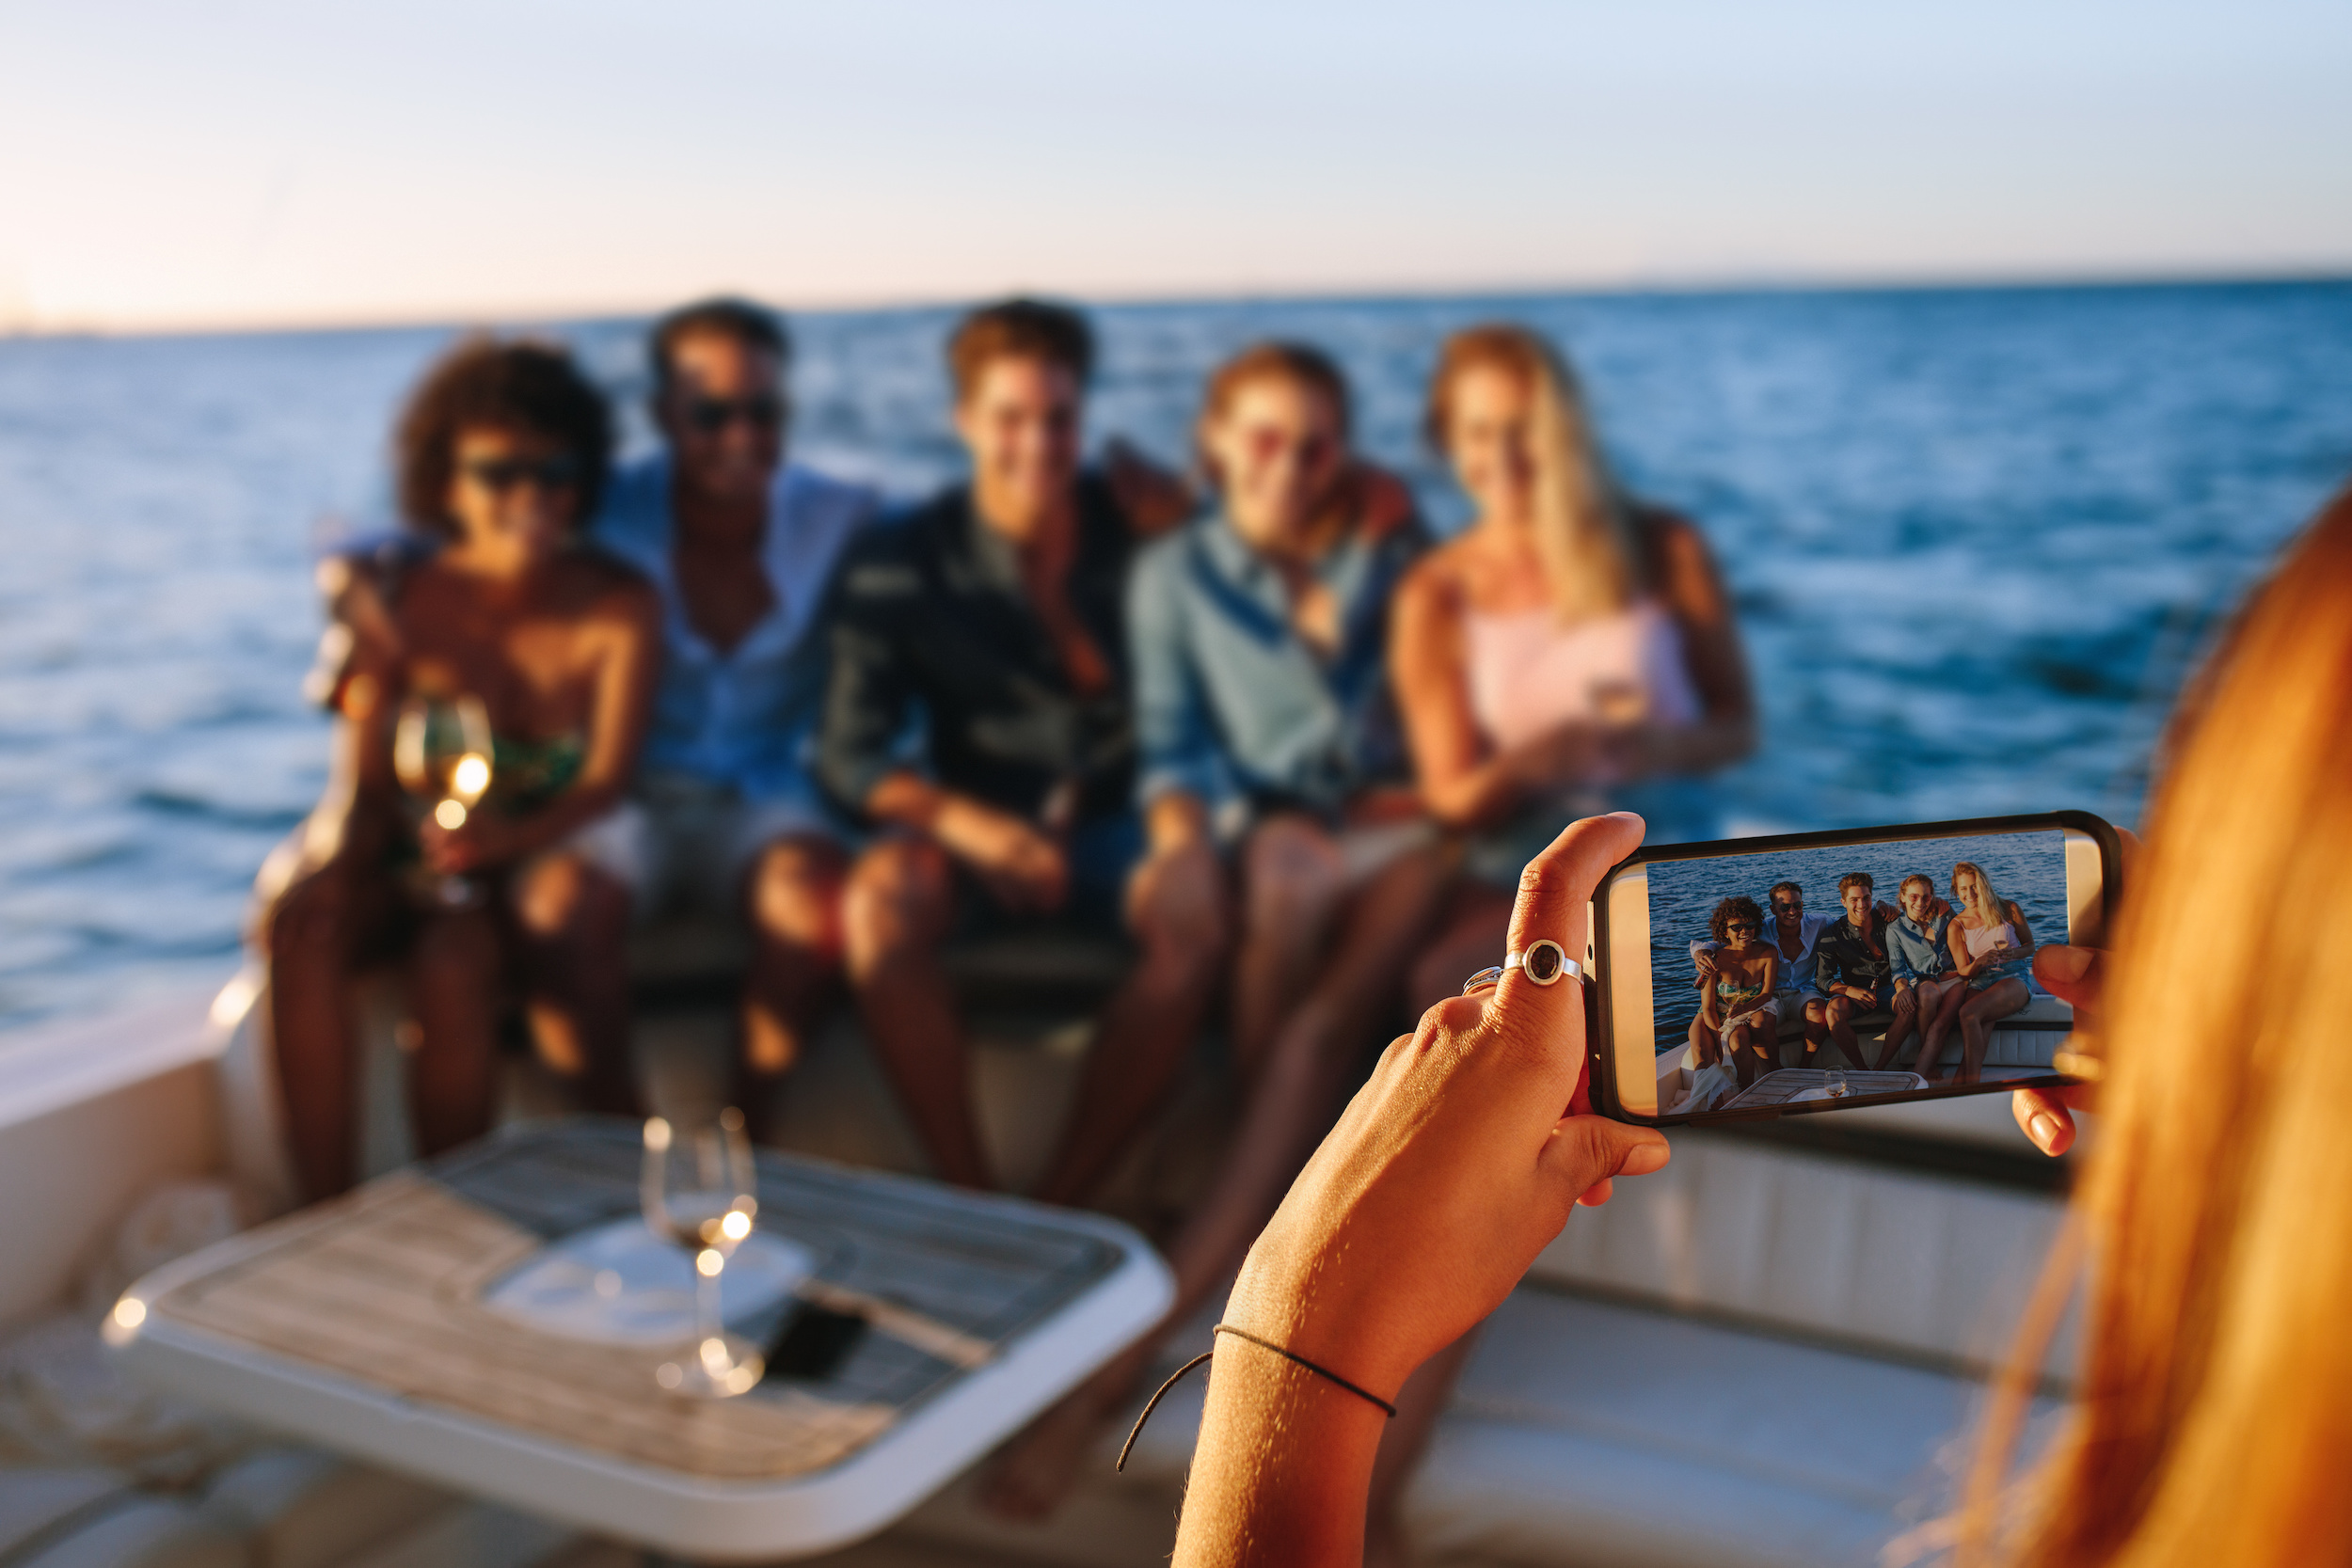 Woman taking a picture with mobile phone of her friends sitting on boat. Capturing memories of boat party.